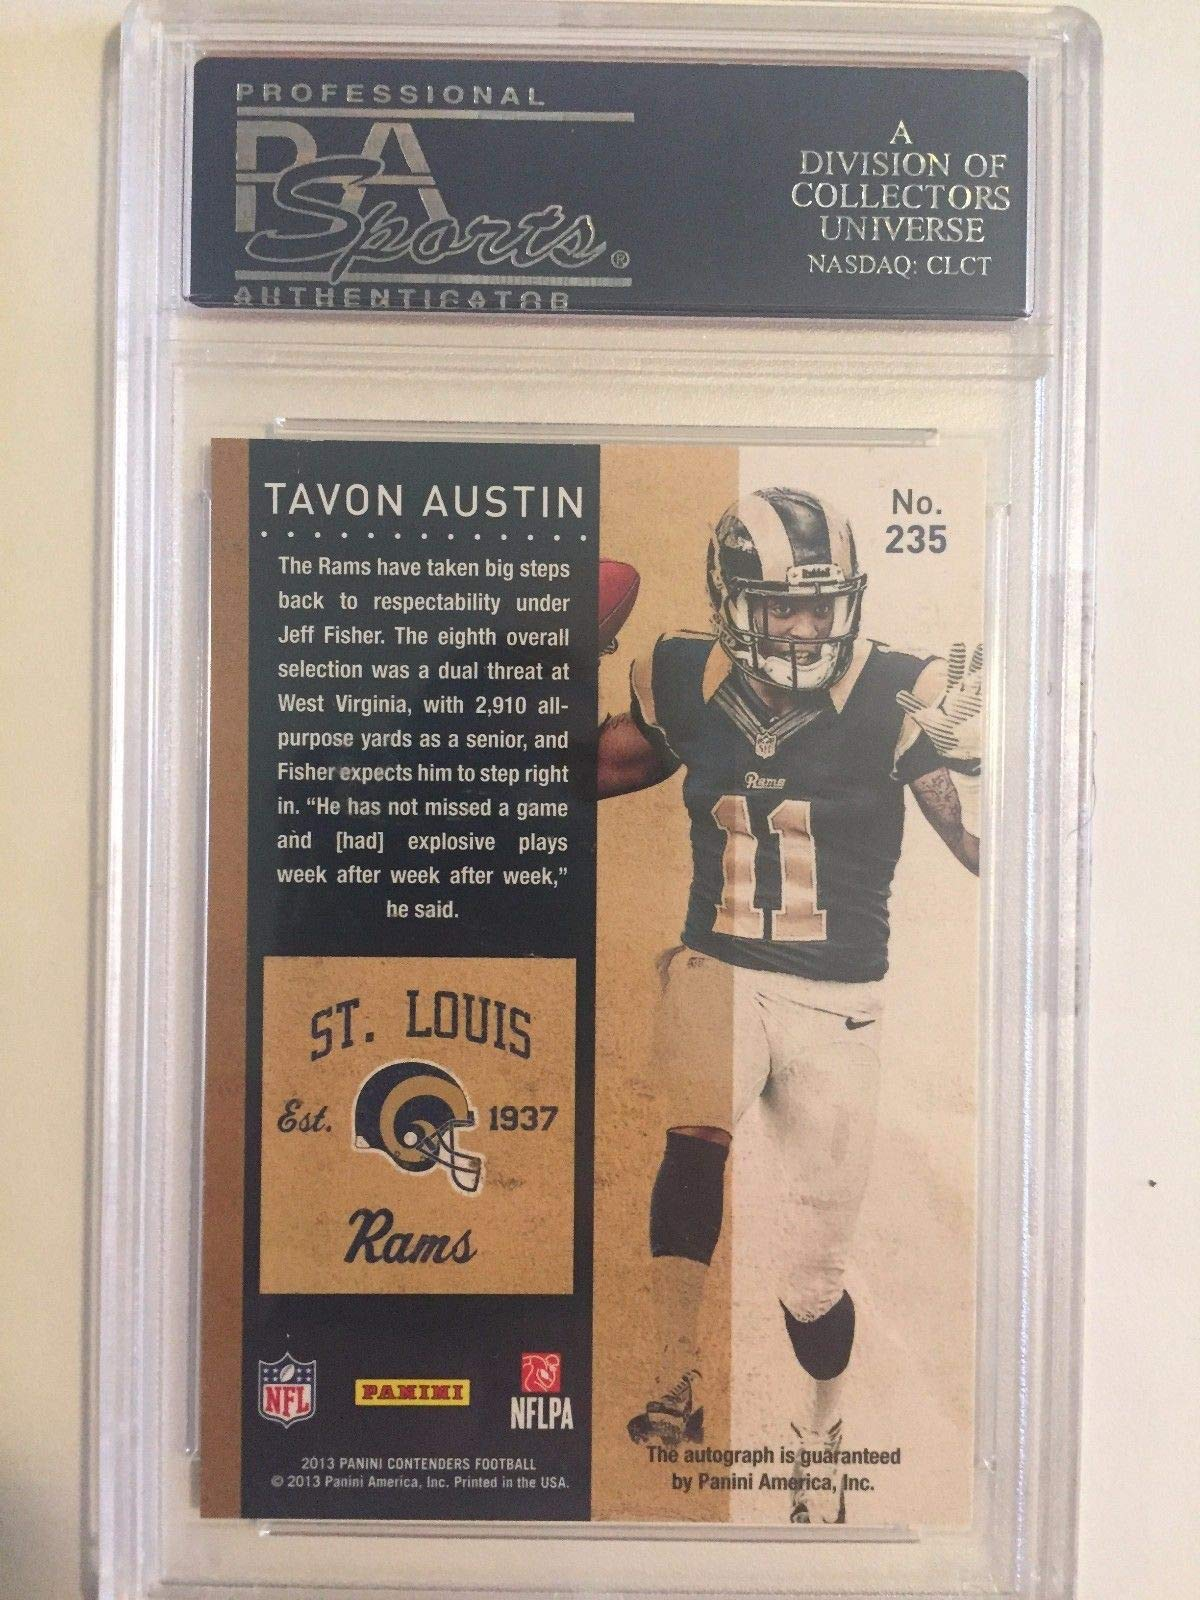 Tavon Austin Autographed Signed 2013 Panini Contenders Rookie Ticket Autographed Signed #235 Rc PSA/DNA Authentic